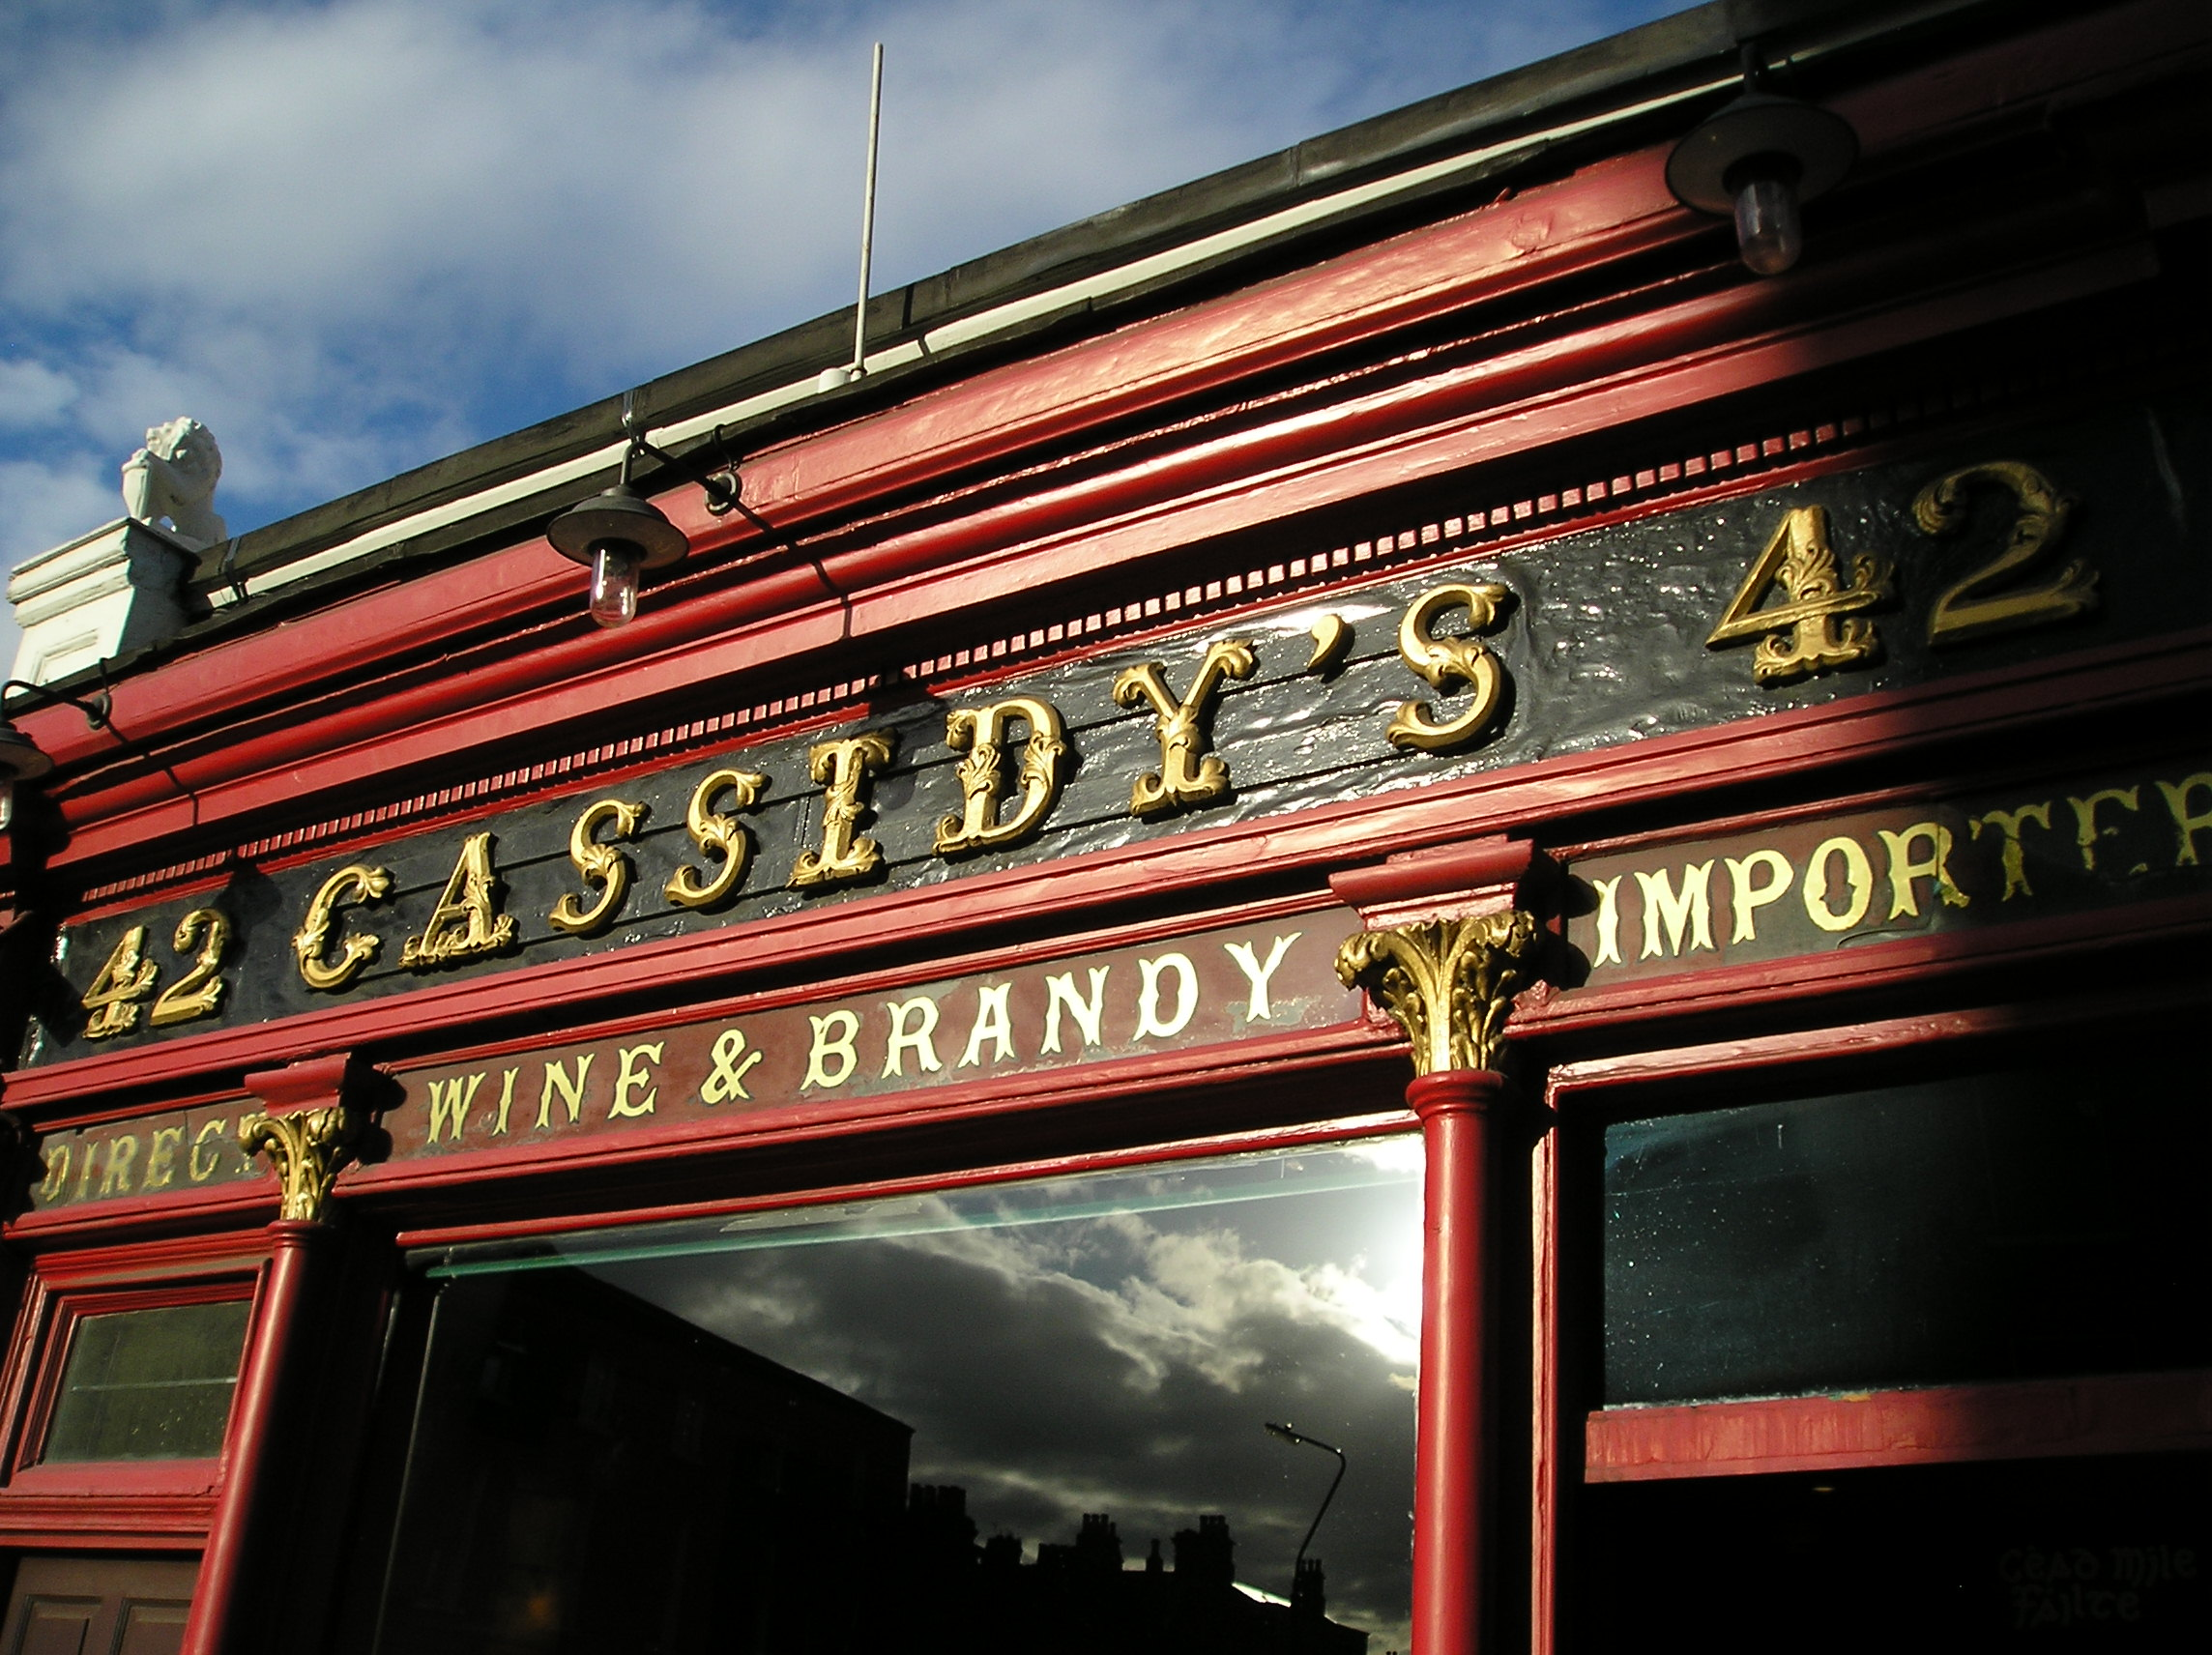 Cassidy's Pub at 42 Lower Camden Street Lower in Dublin which President Bill Clinton visited.